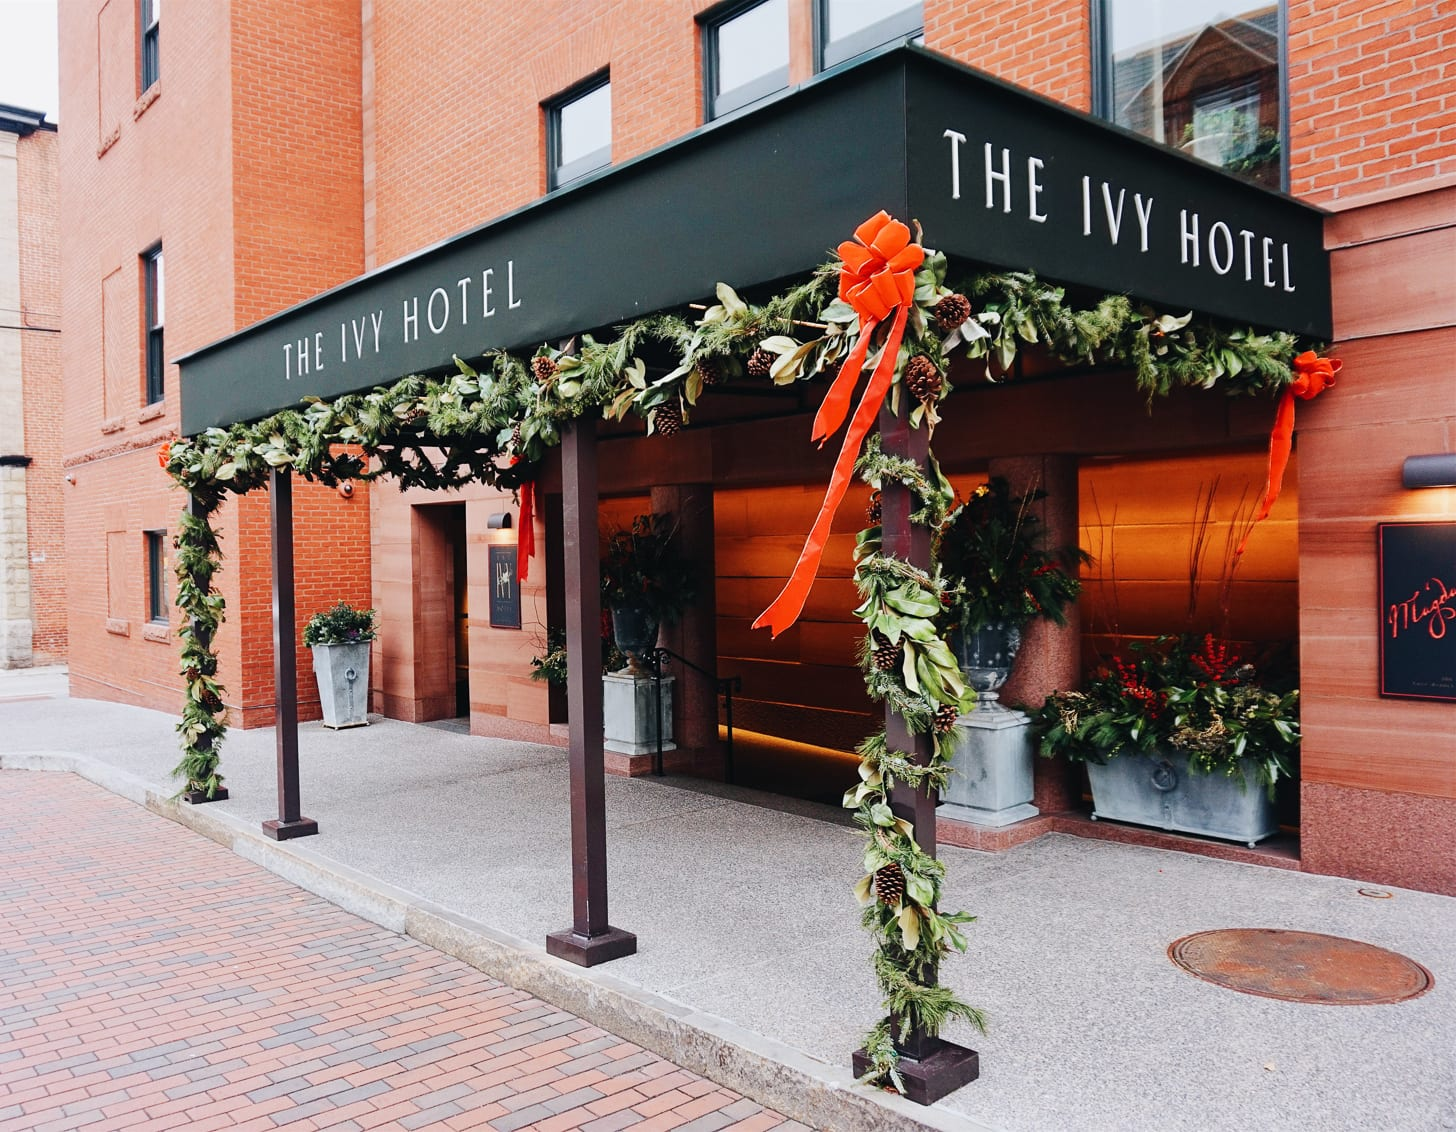 Exterior entrance of The Ivy Hotel Decorated with Holiday Garland